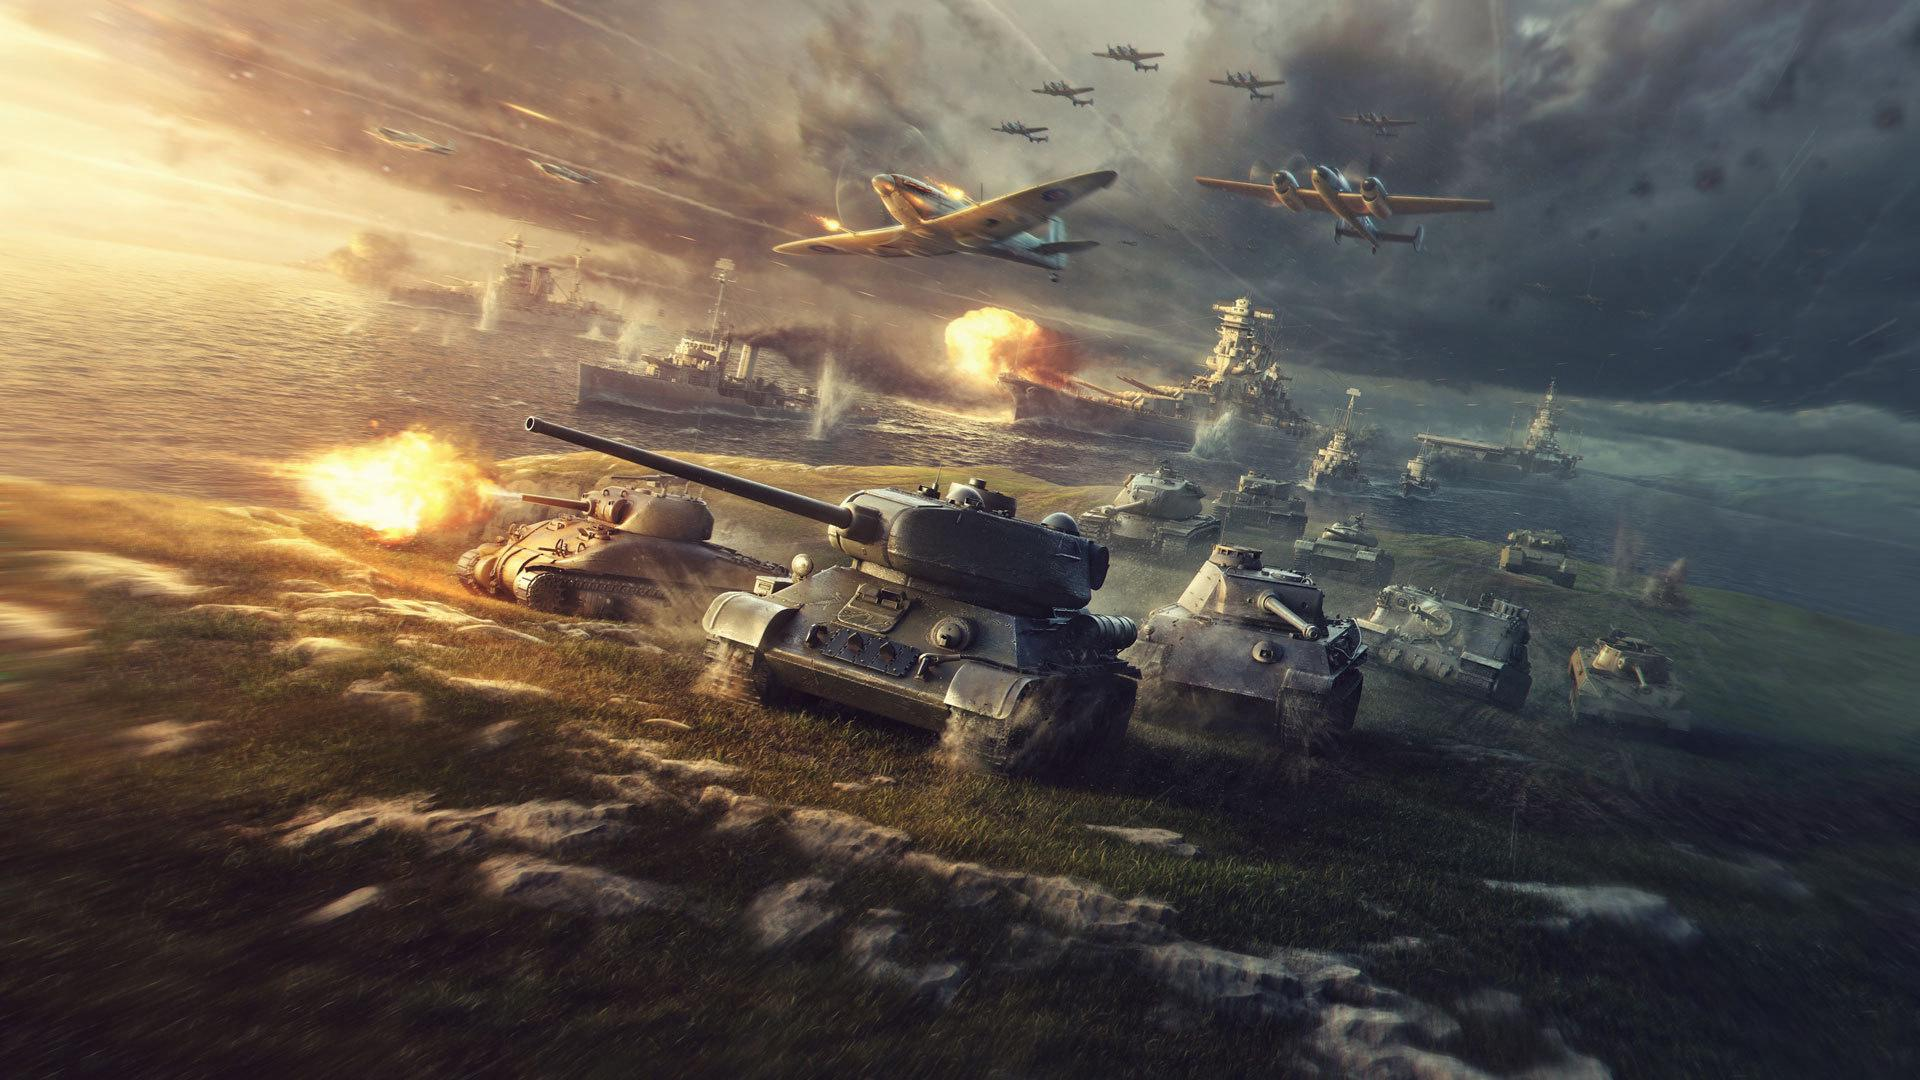 Обои на айфон world of tanks, world of warplanes, world of warships, 1920 на 1080 пикселей